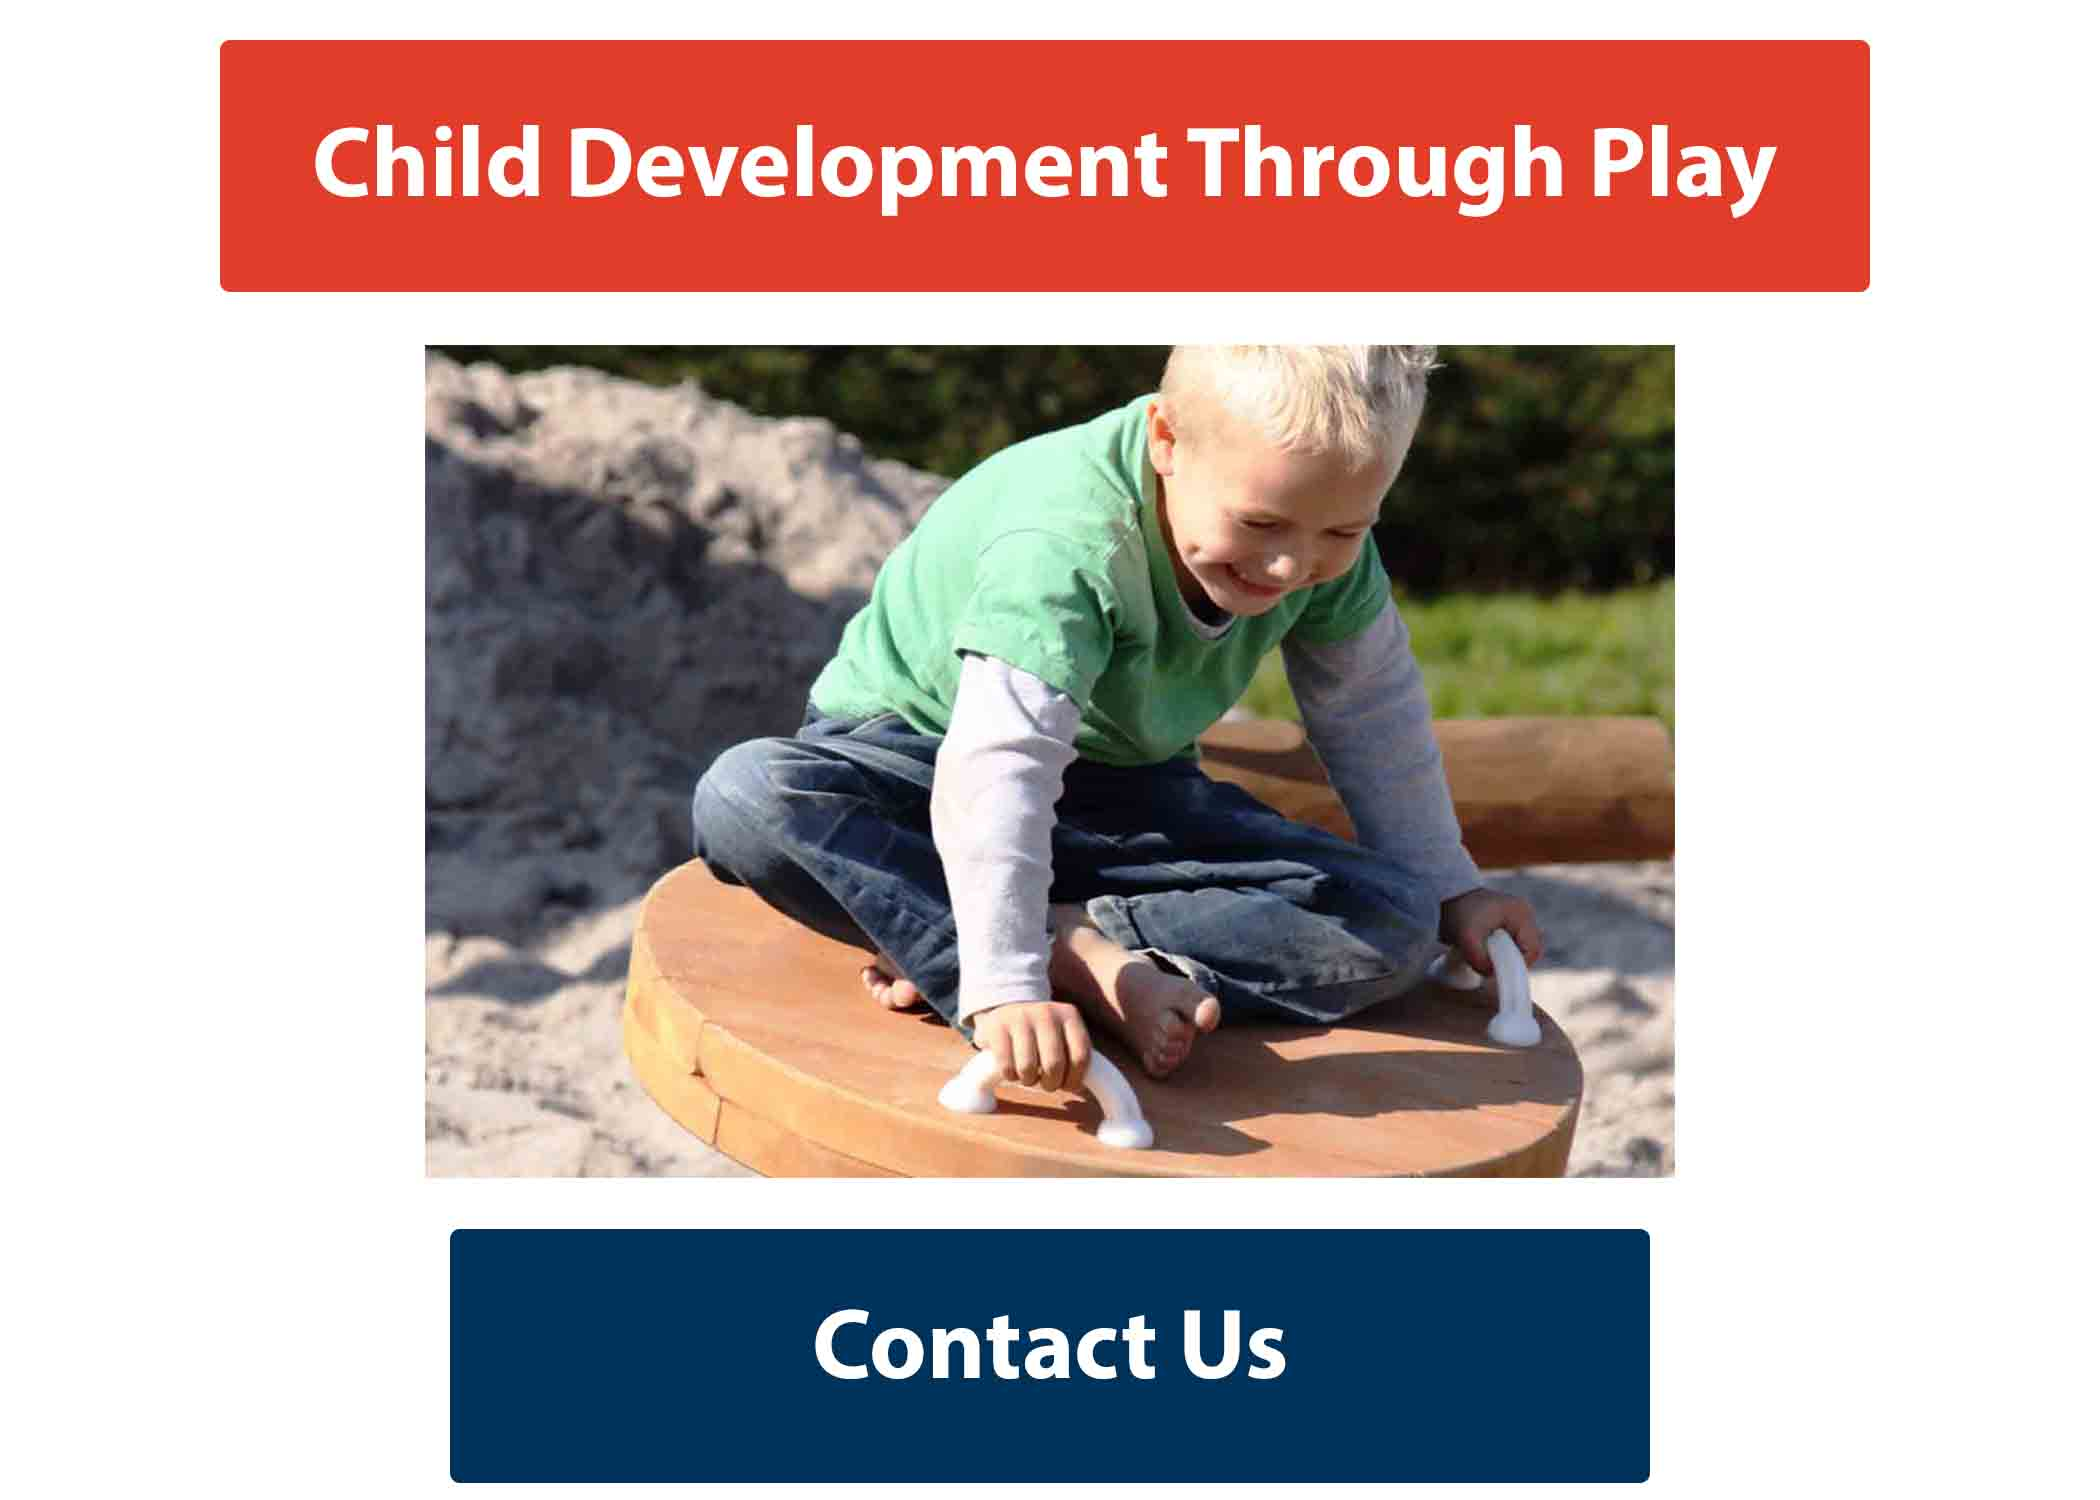 Child Development Through Play